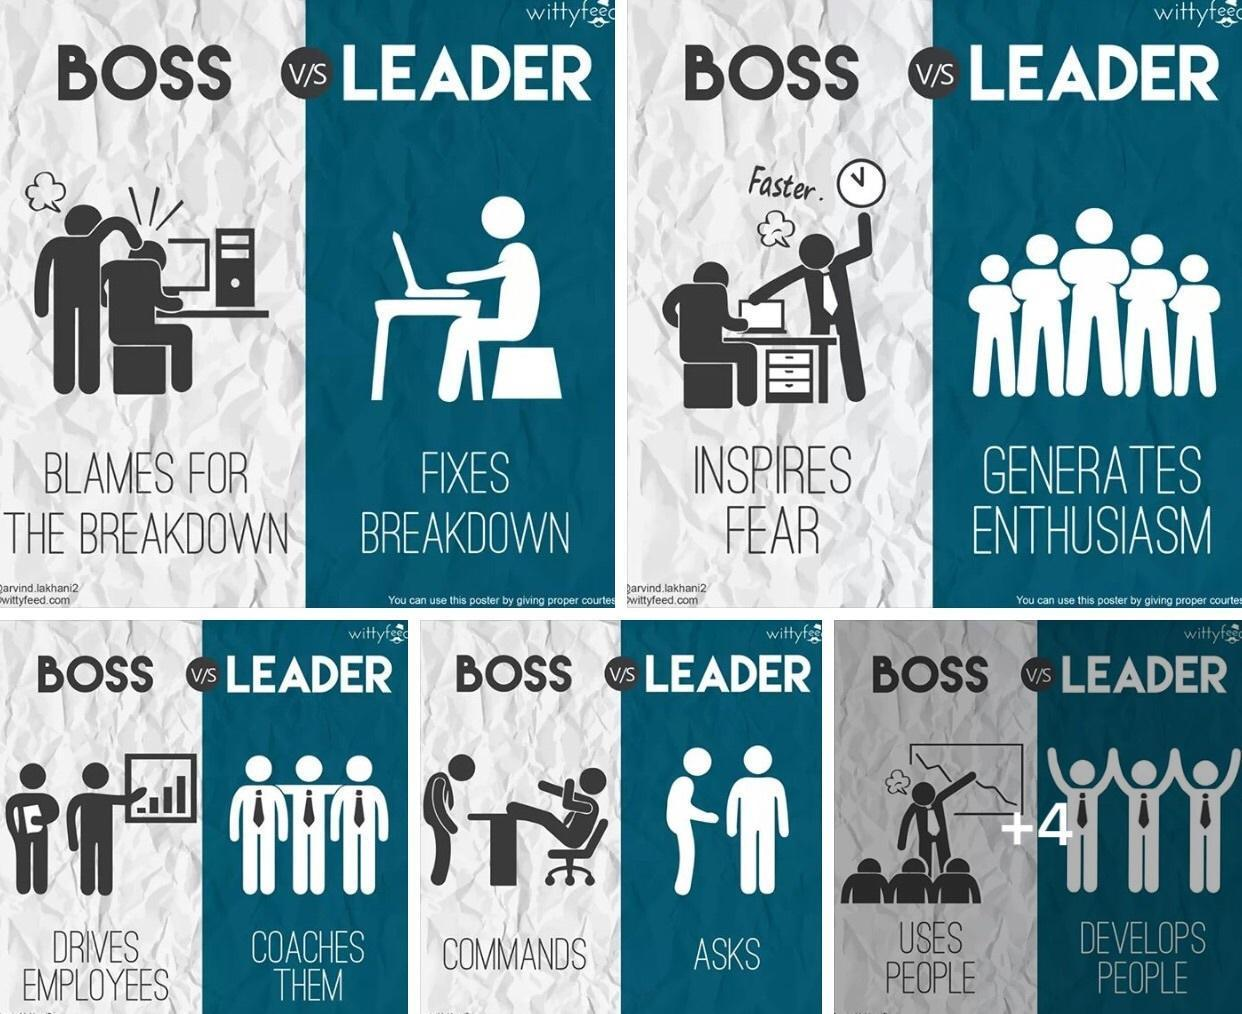 What's the difference between leadership and management?